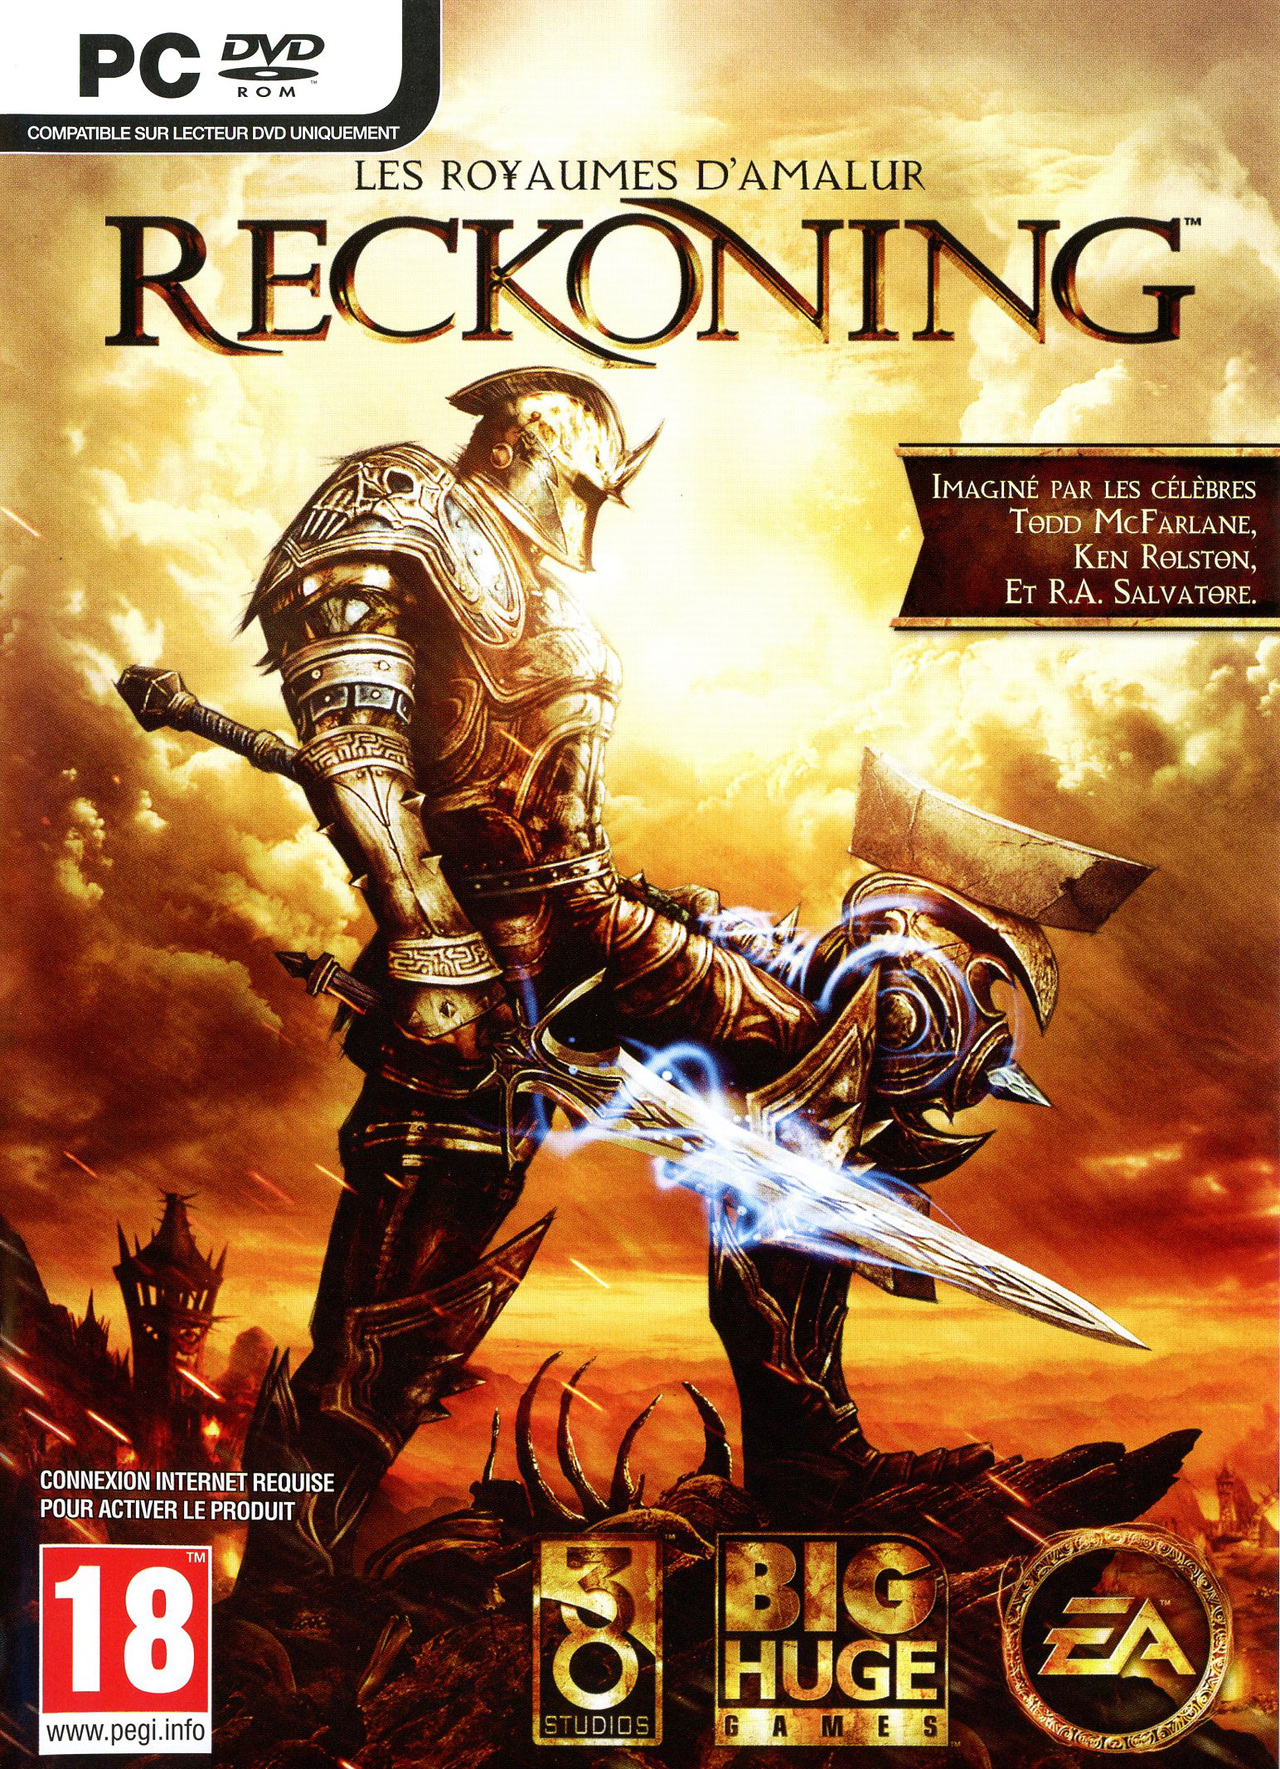 Kingdoms of Amalur Reckoning MULTi5 [FR] (exclue) [MULTI]